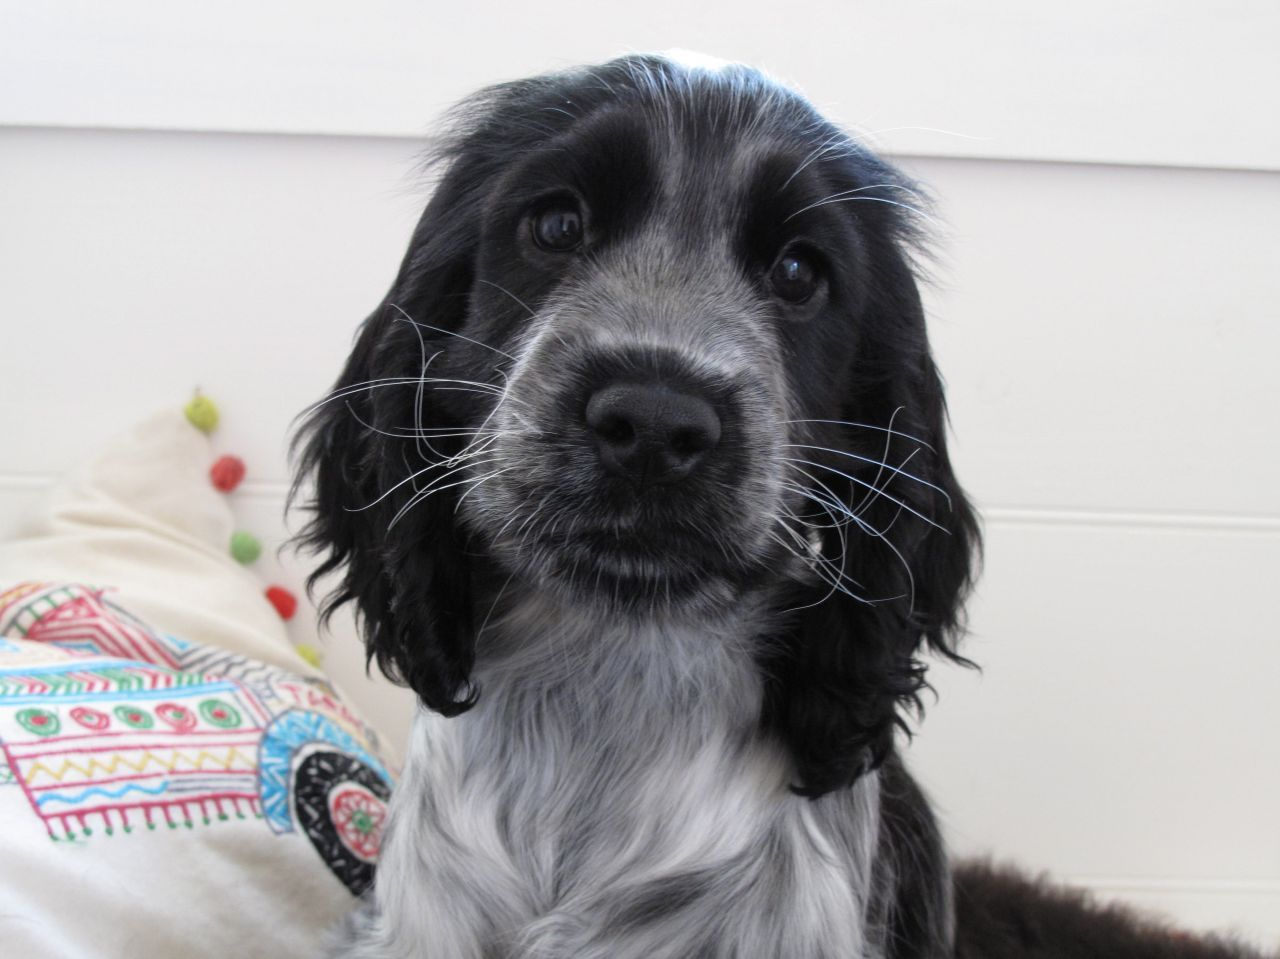 Cocker spaniel - Dogs and Puppies, Rehome Buy Blue roan cocker spaniel photos